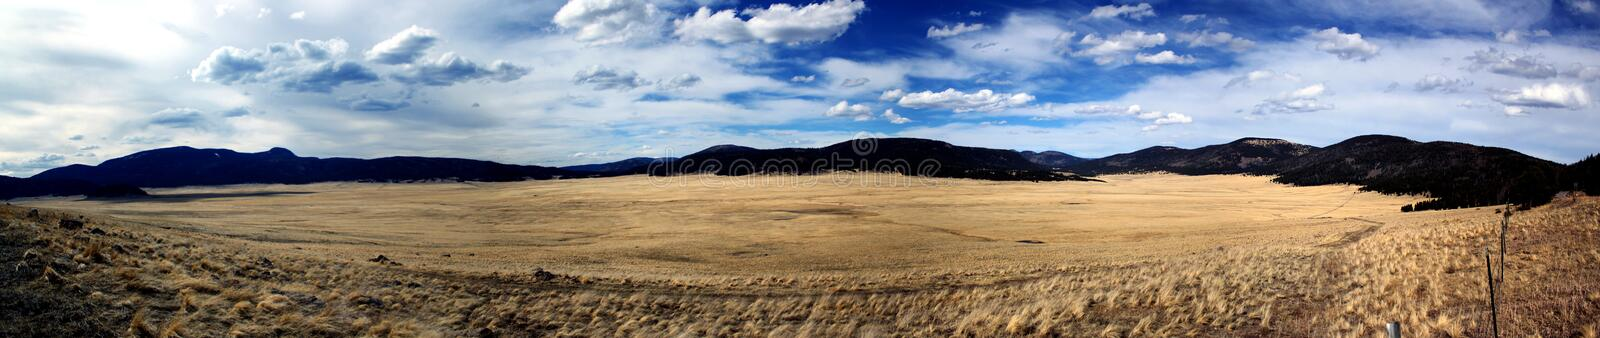 Panoramic view: Wide and open landscape in the mountains / USA royalty free stock image